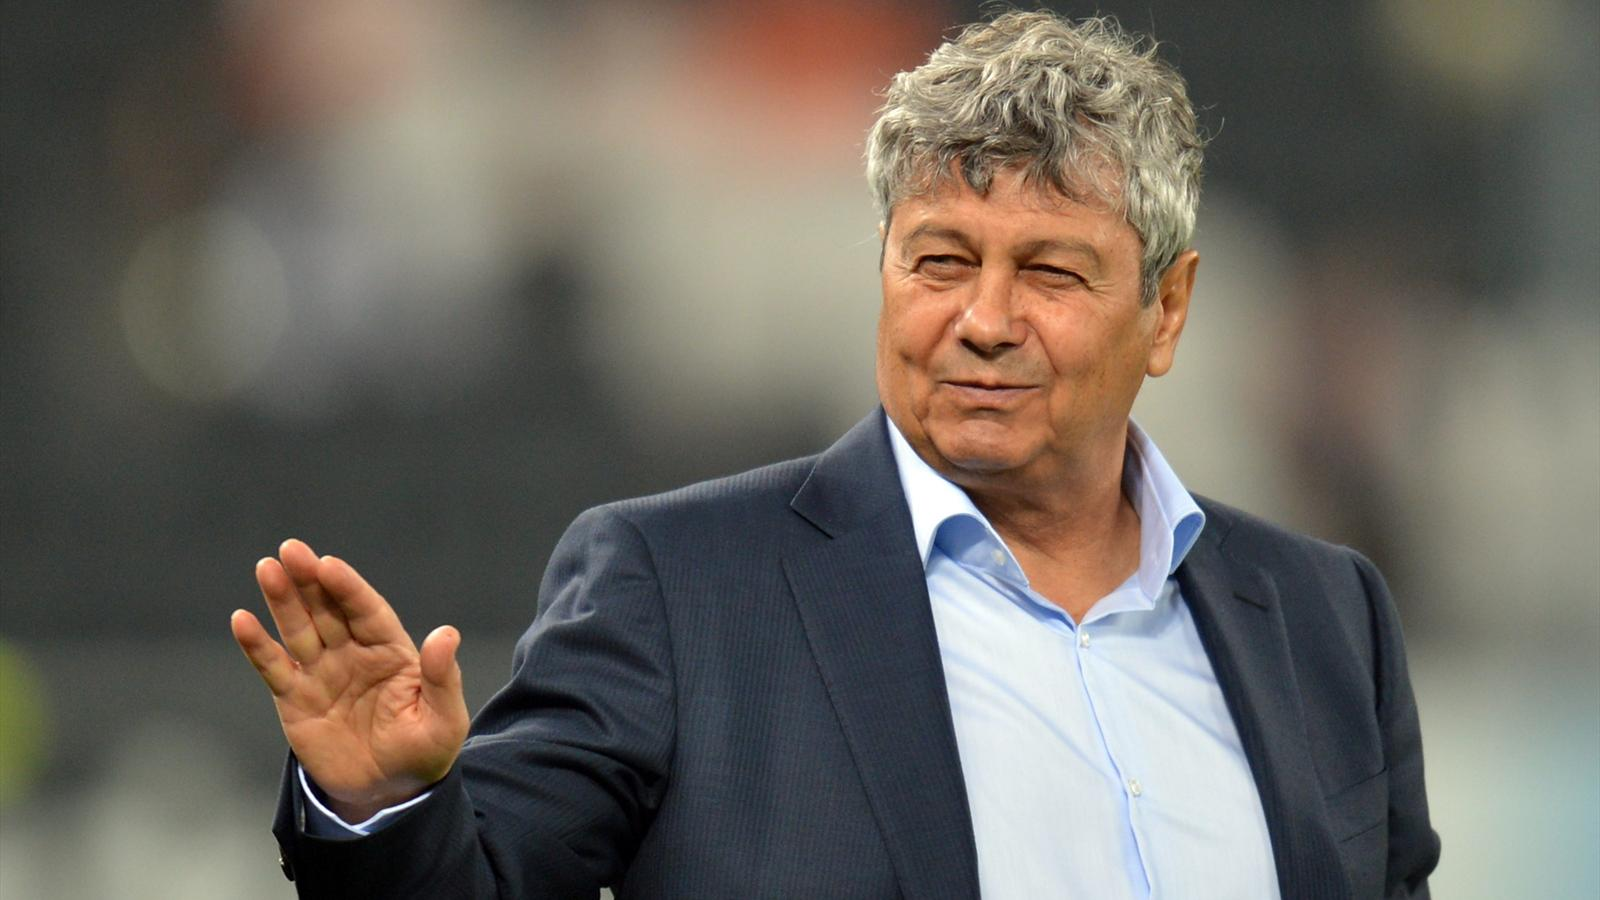 Mircea Lucescu earned a  million dollar salary - leaving the net worth at 13.5 million in 2018